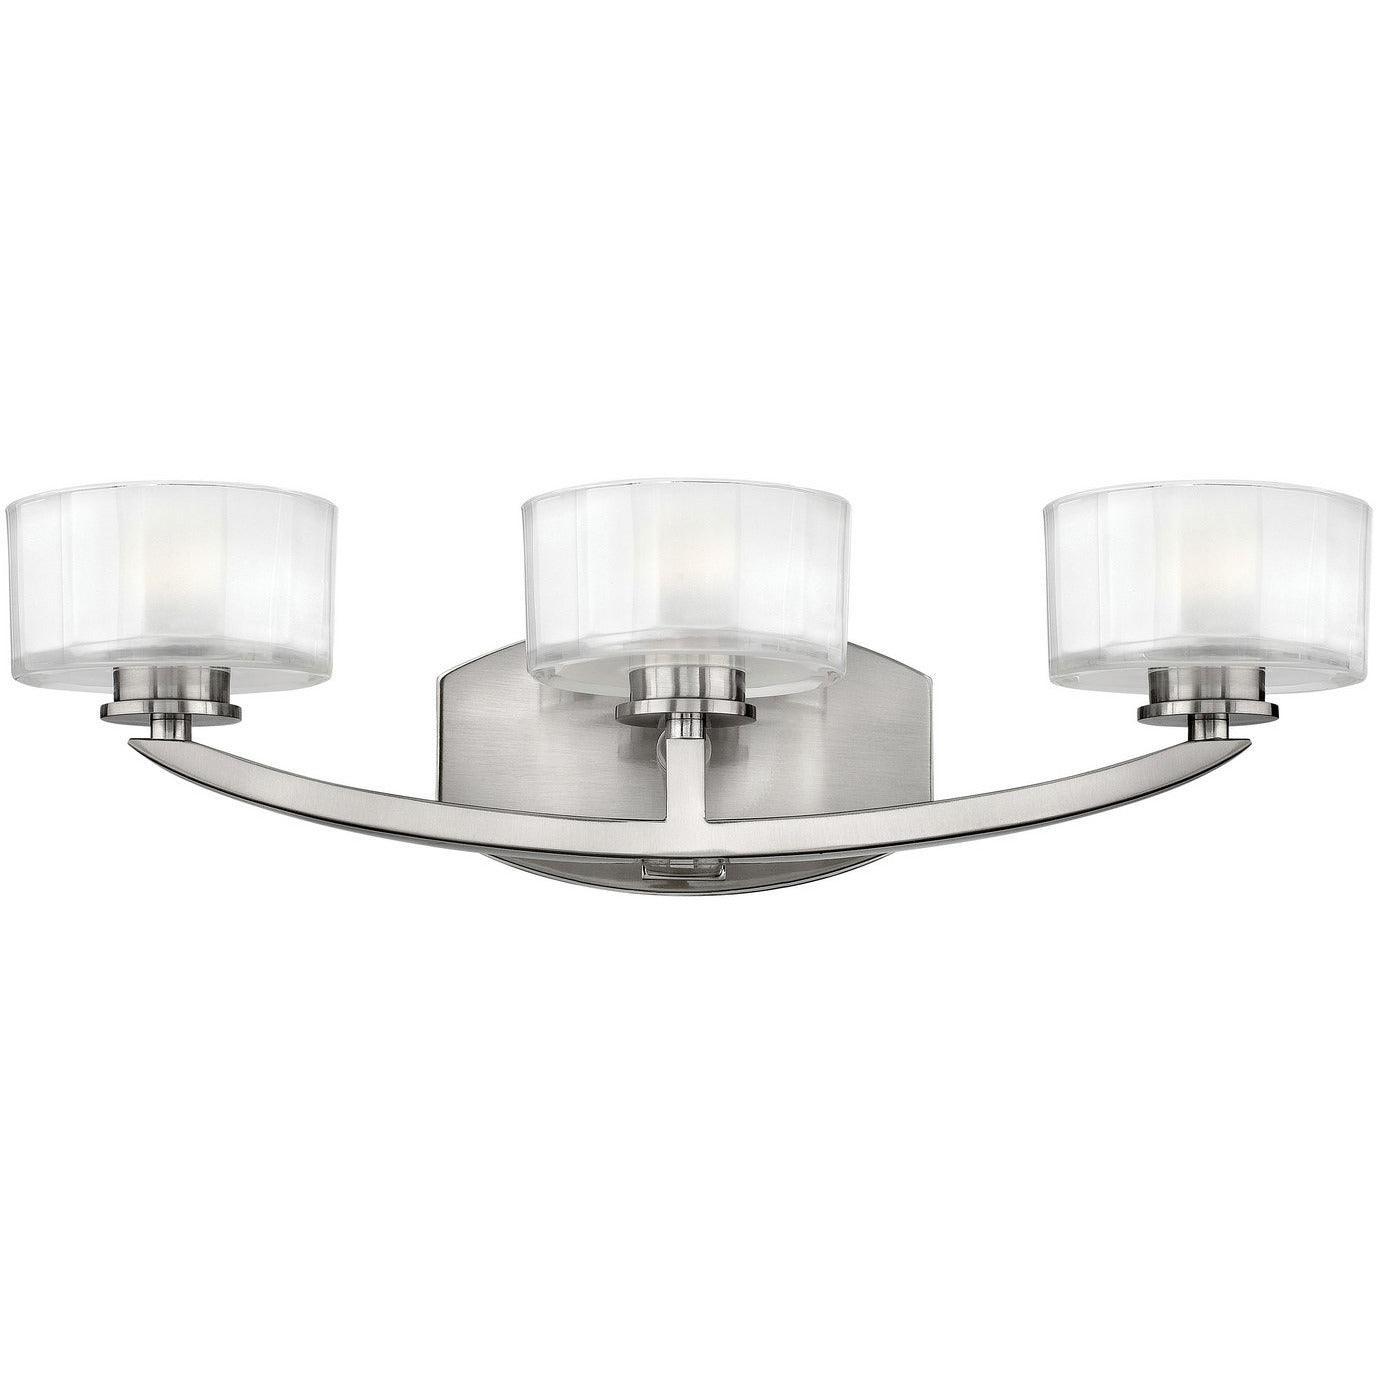 Hinkley Canada - 5593BN - Three Light Bath - Meridian - Brushed Nickel